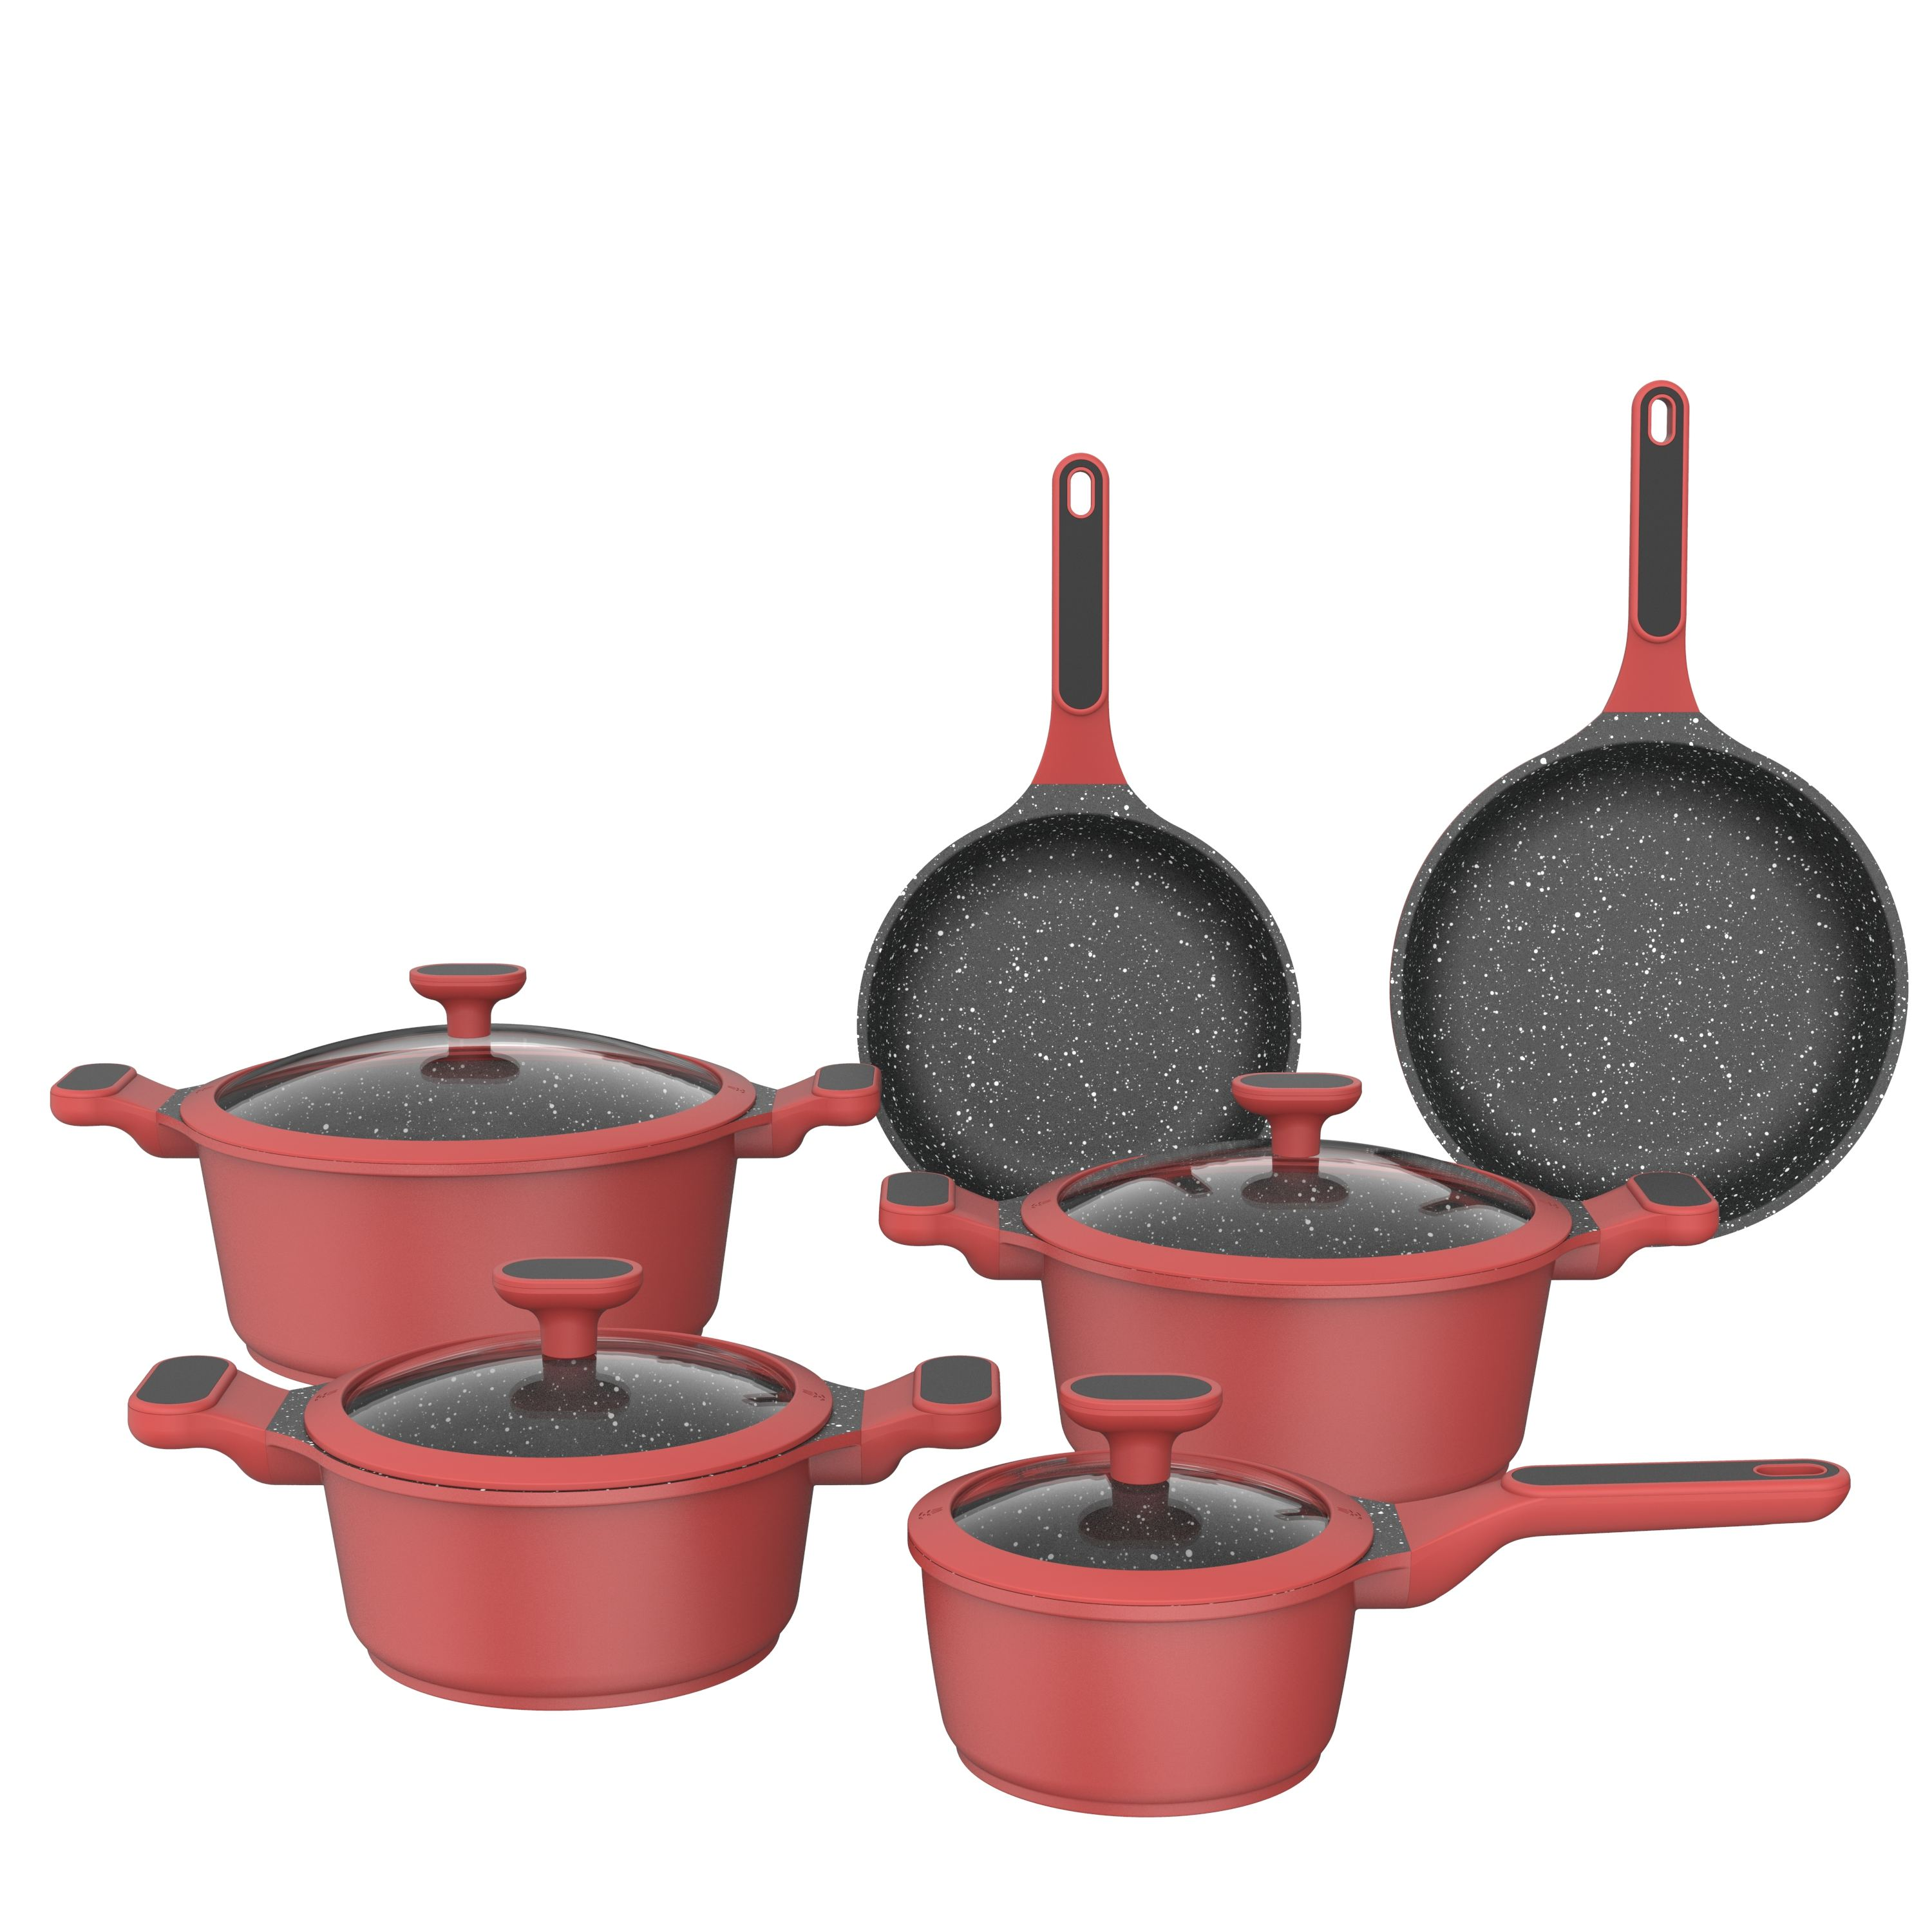 2021 New Aluminum Kitchen Ceramic 10pcs/set Multi Clad Stainless Steel Nonstick Kitchenware Piece Cookware Sets